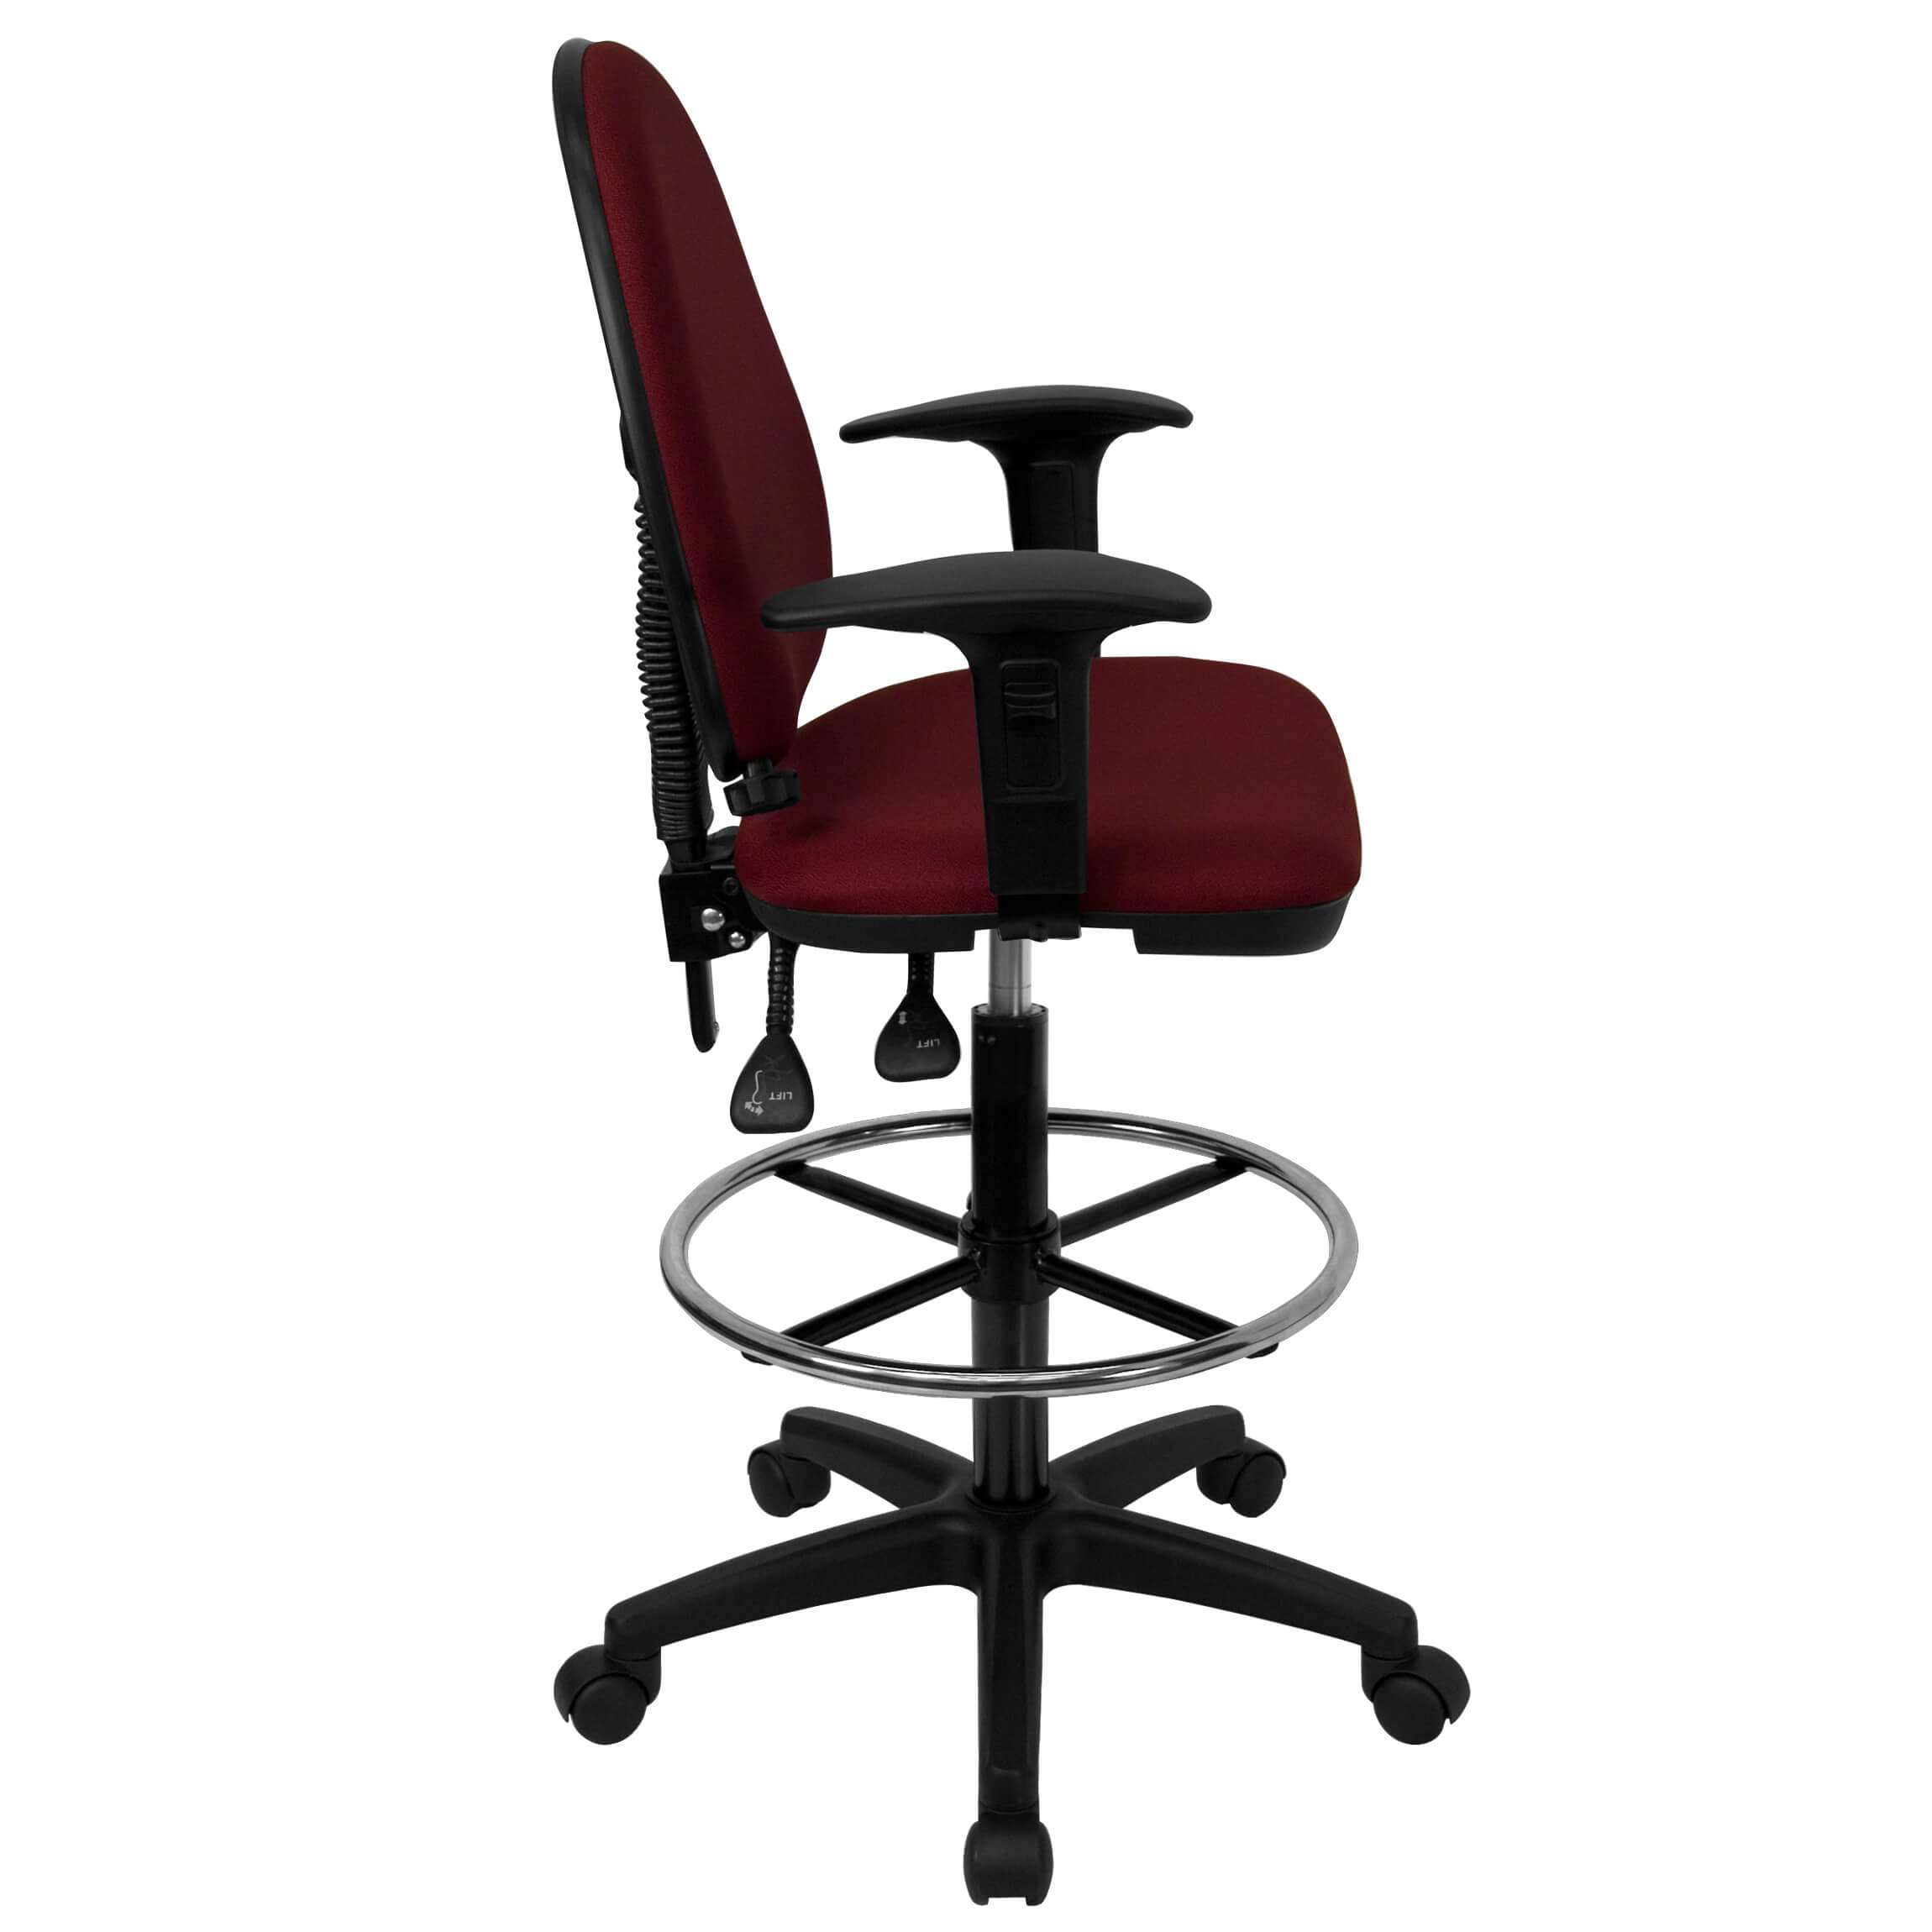 Adjustable Drafting Chair Ursa Petite Adjustable Drafting Chair